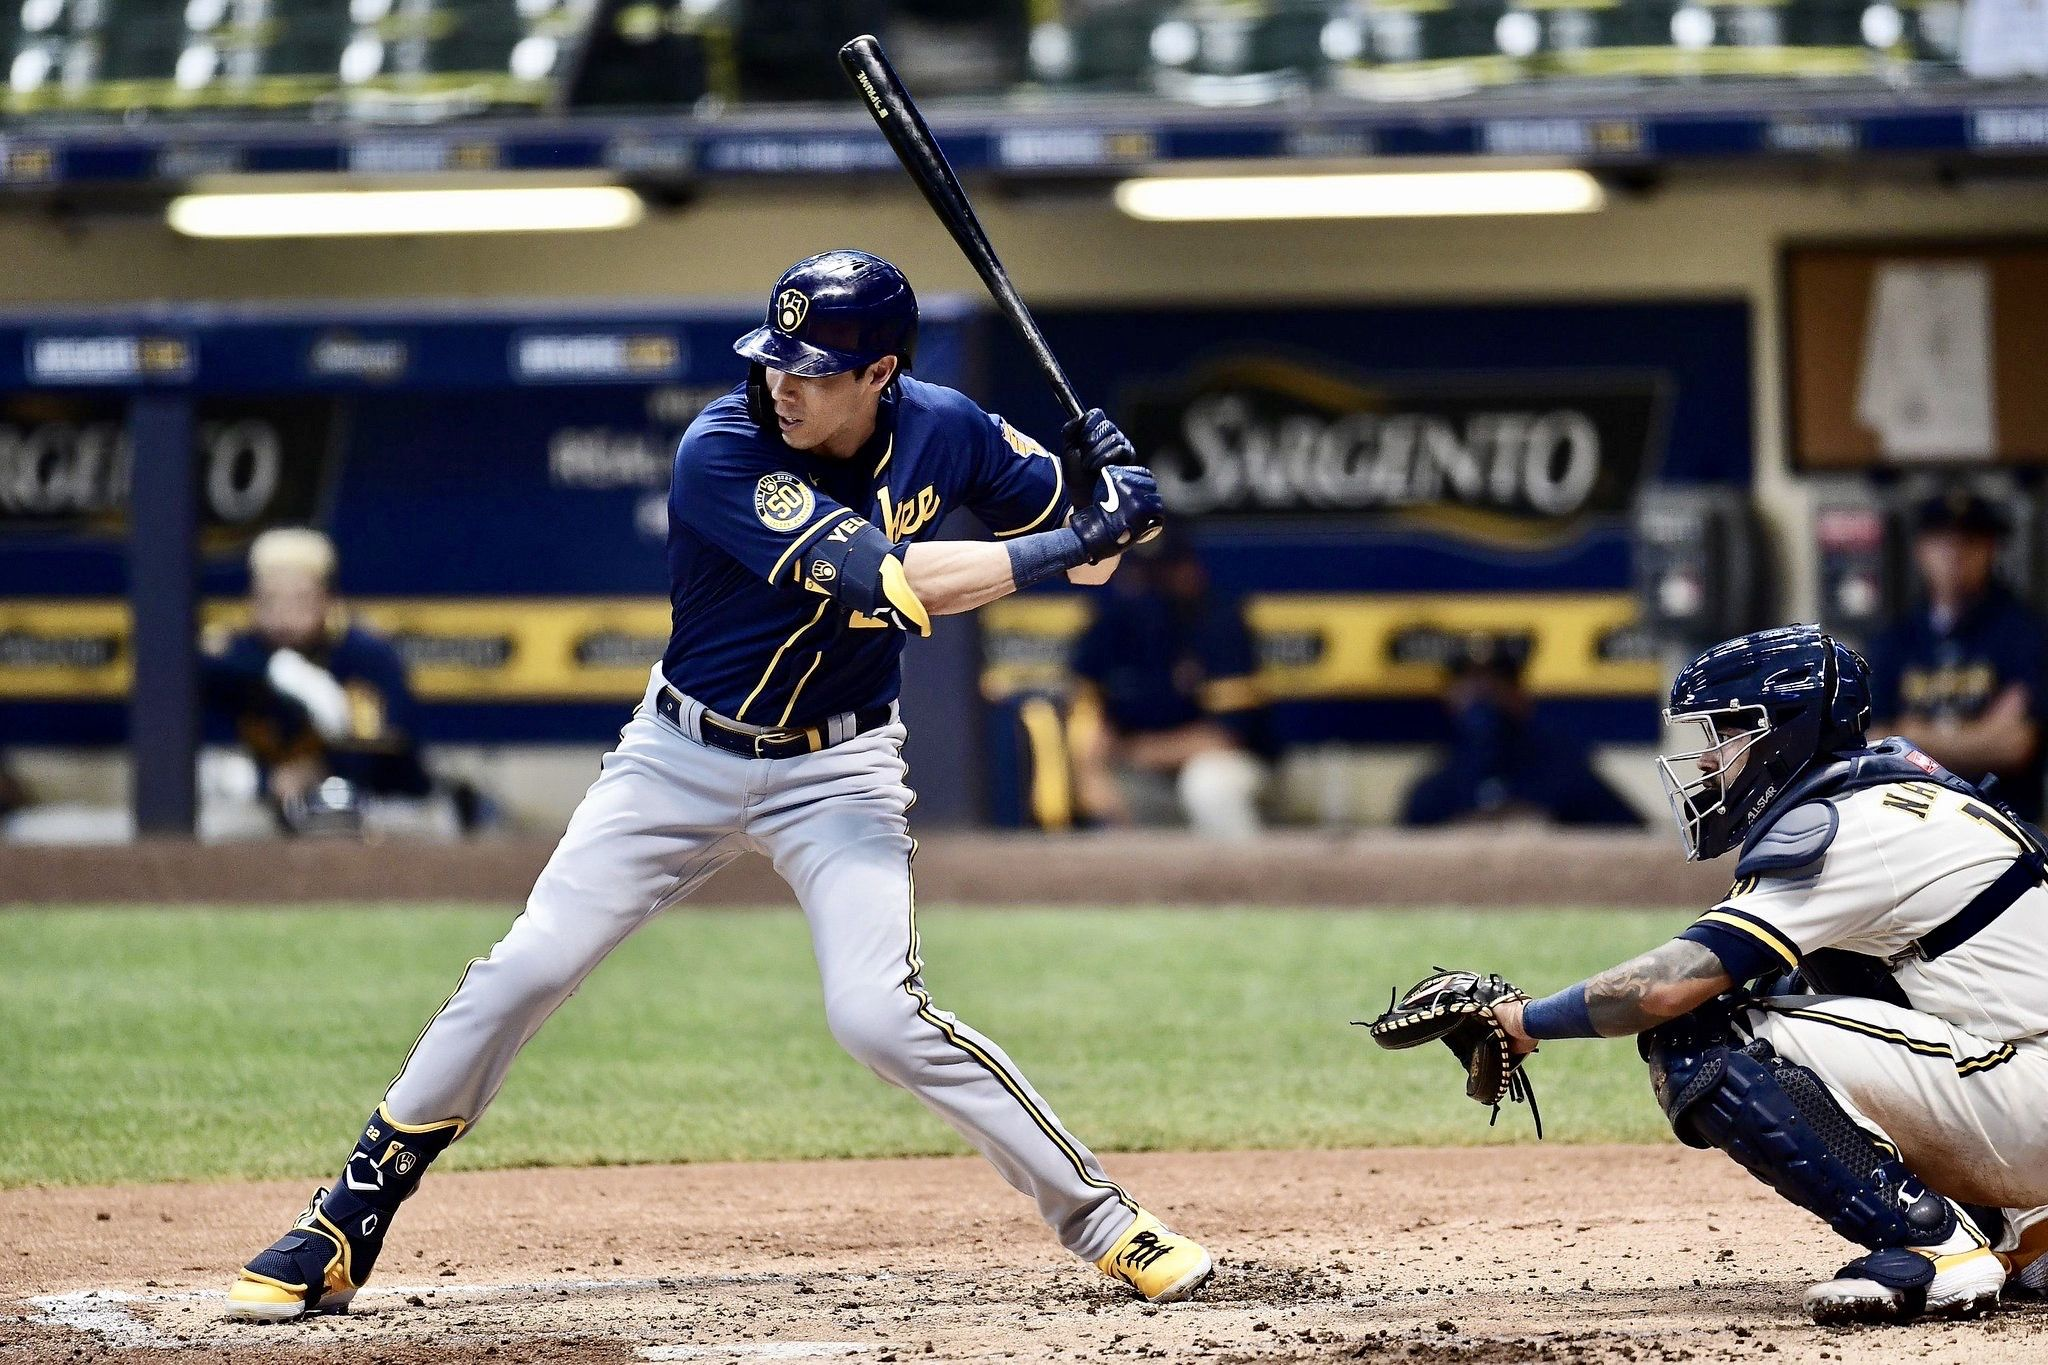 Pin By Maddie On Thisismycrew In 2020 Christian Yelich Christian Cute